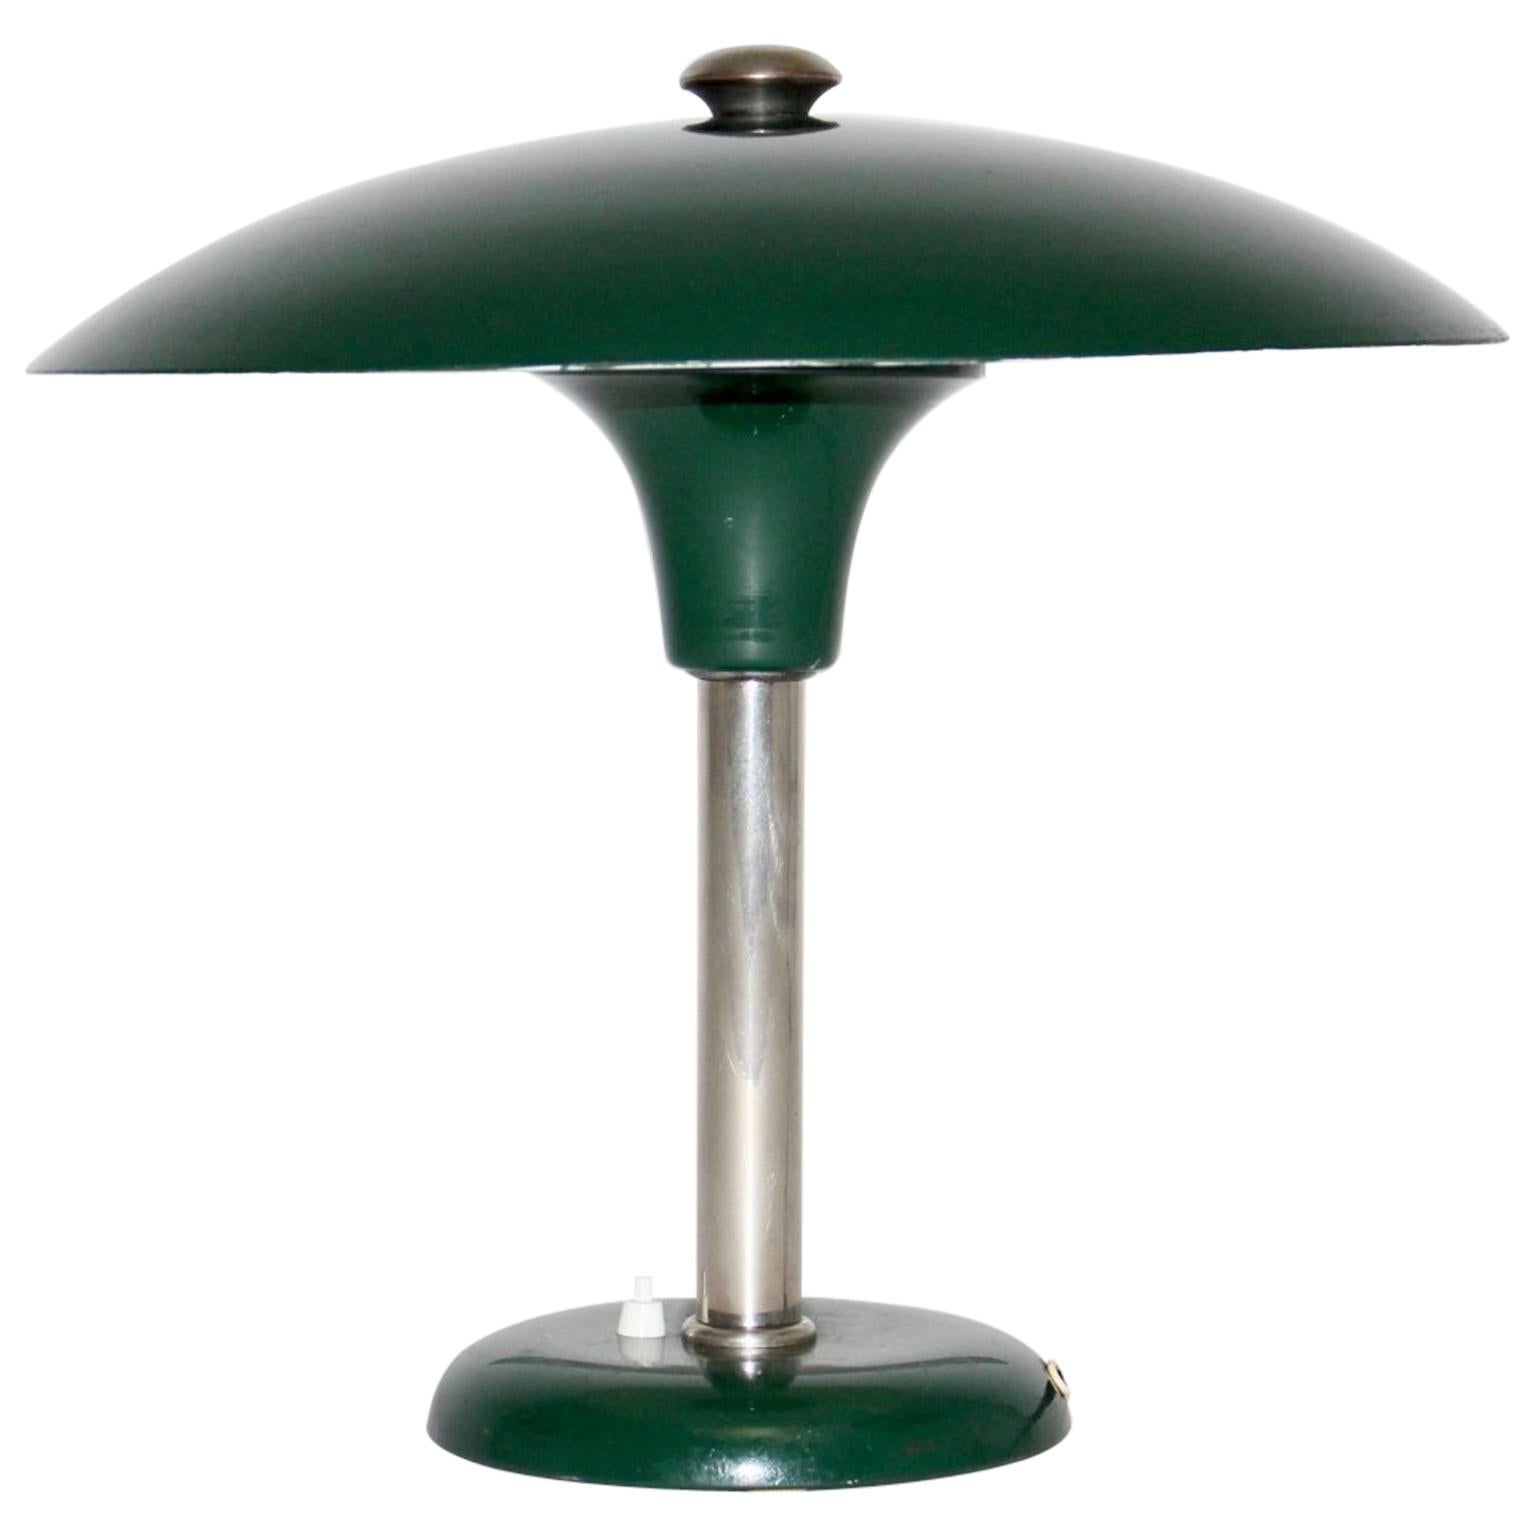 Green Bauhaus Art Deco Vintage Table Lamp Metal by Max Schumacher, 1934, Germany